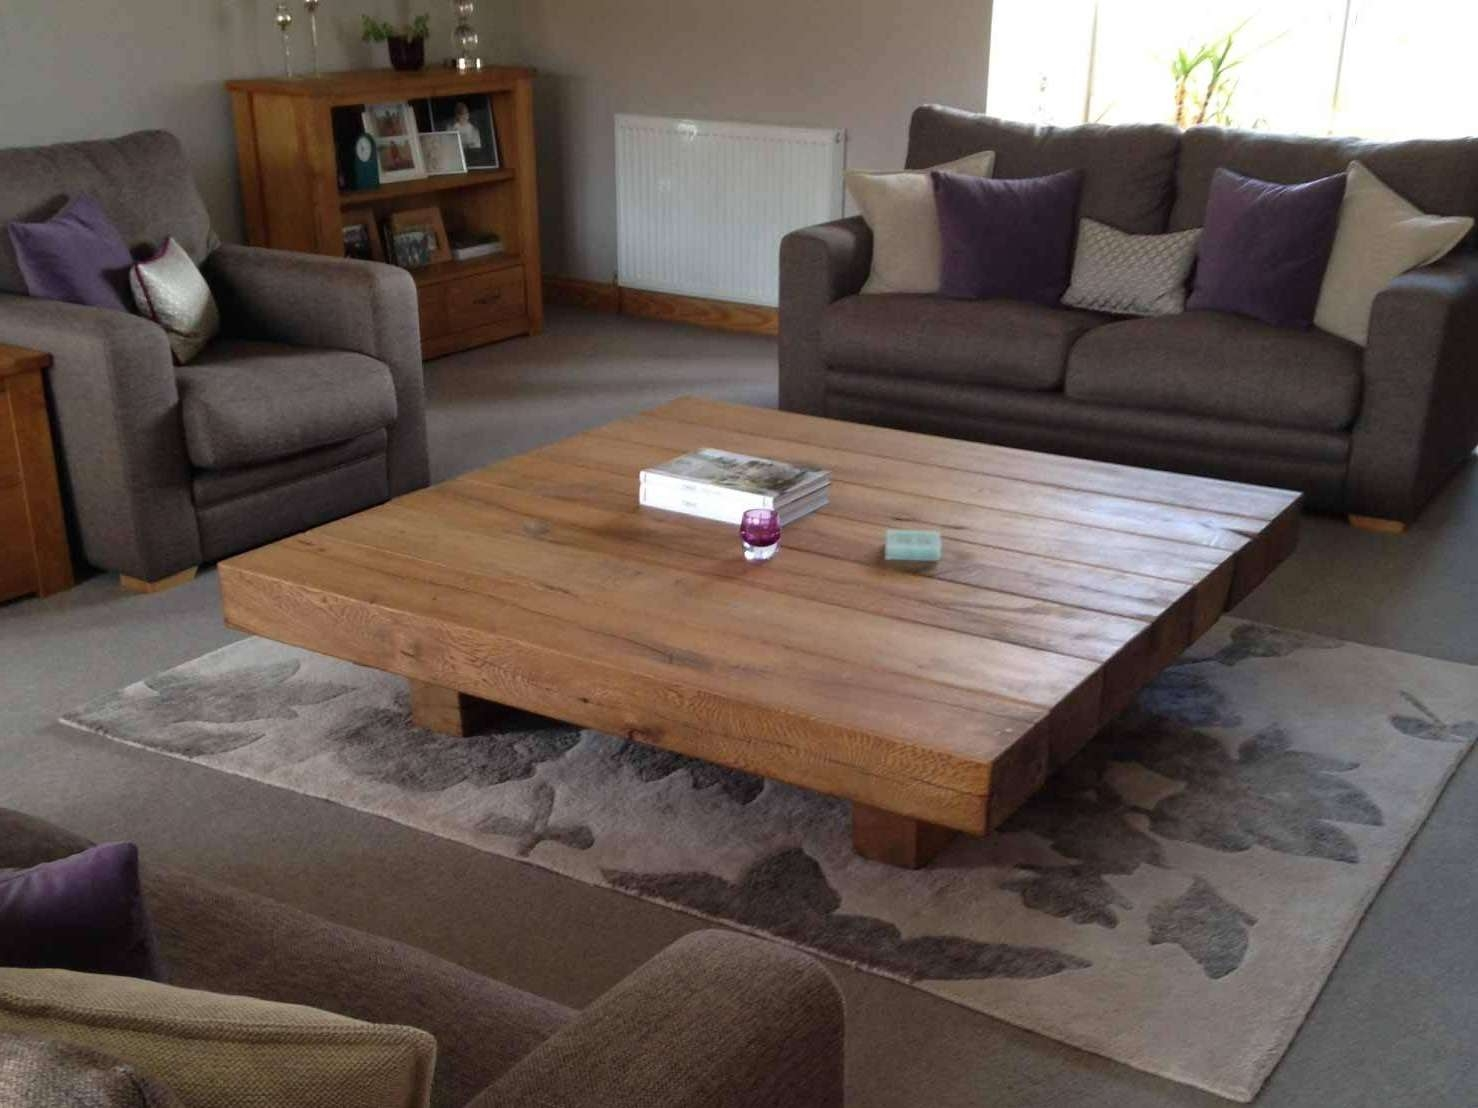 2017 Low Coffee Tables Throughout Coffee Table : Stunning Low Coffee Tables Image Inspirations (View 9 of 20)